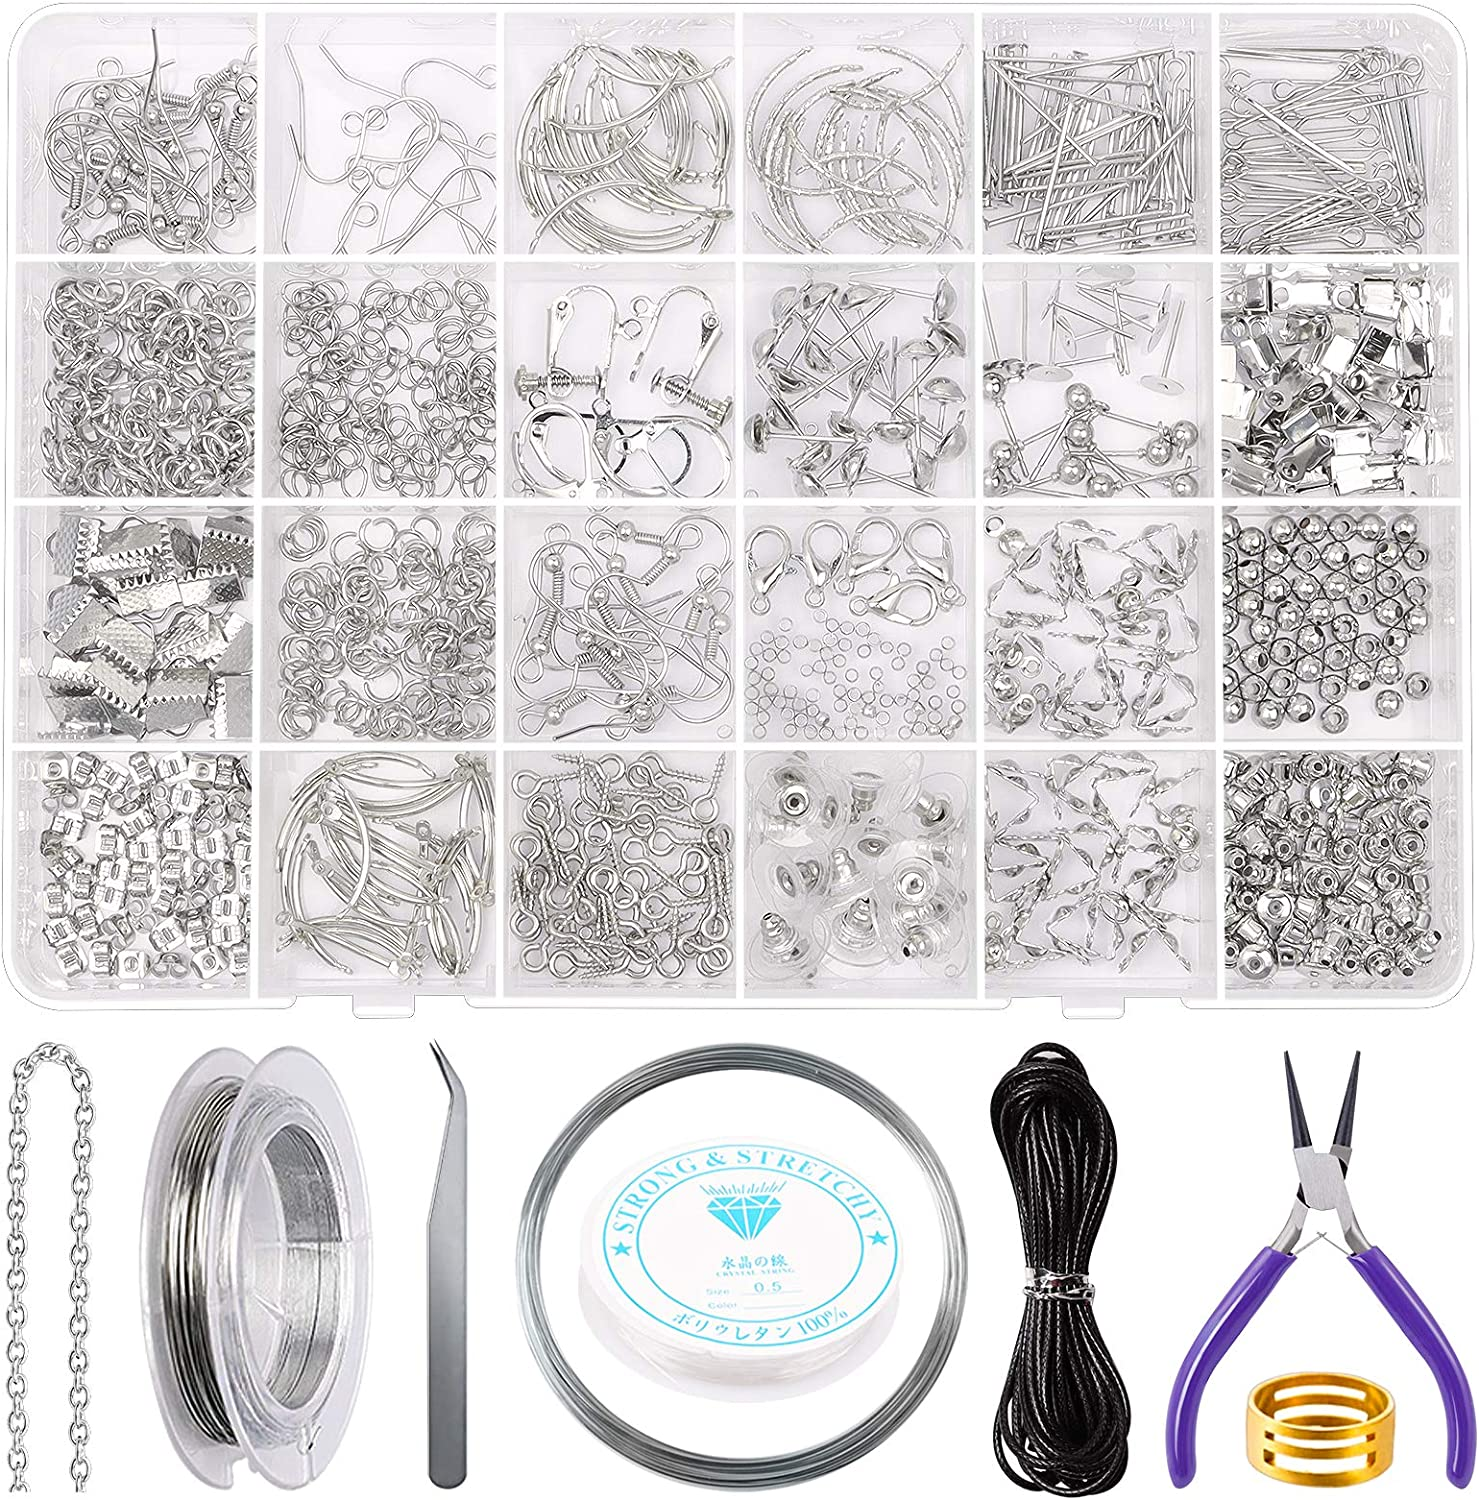 Earring Making Supplies Kit SONGIN Jewelry Attention brand Set Ea with Fort Worth Mall